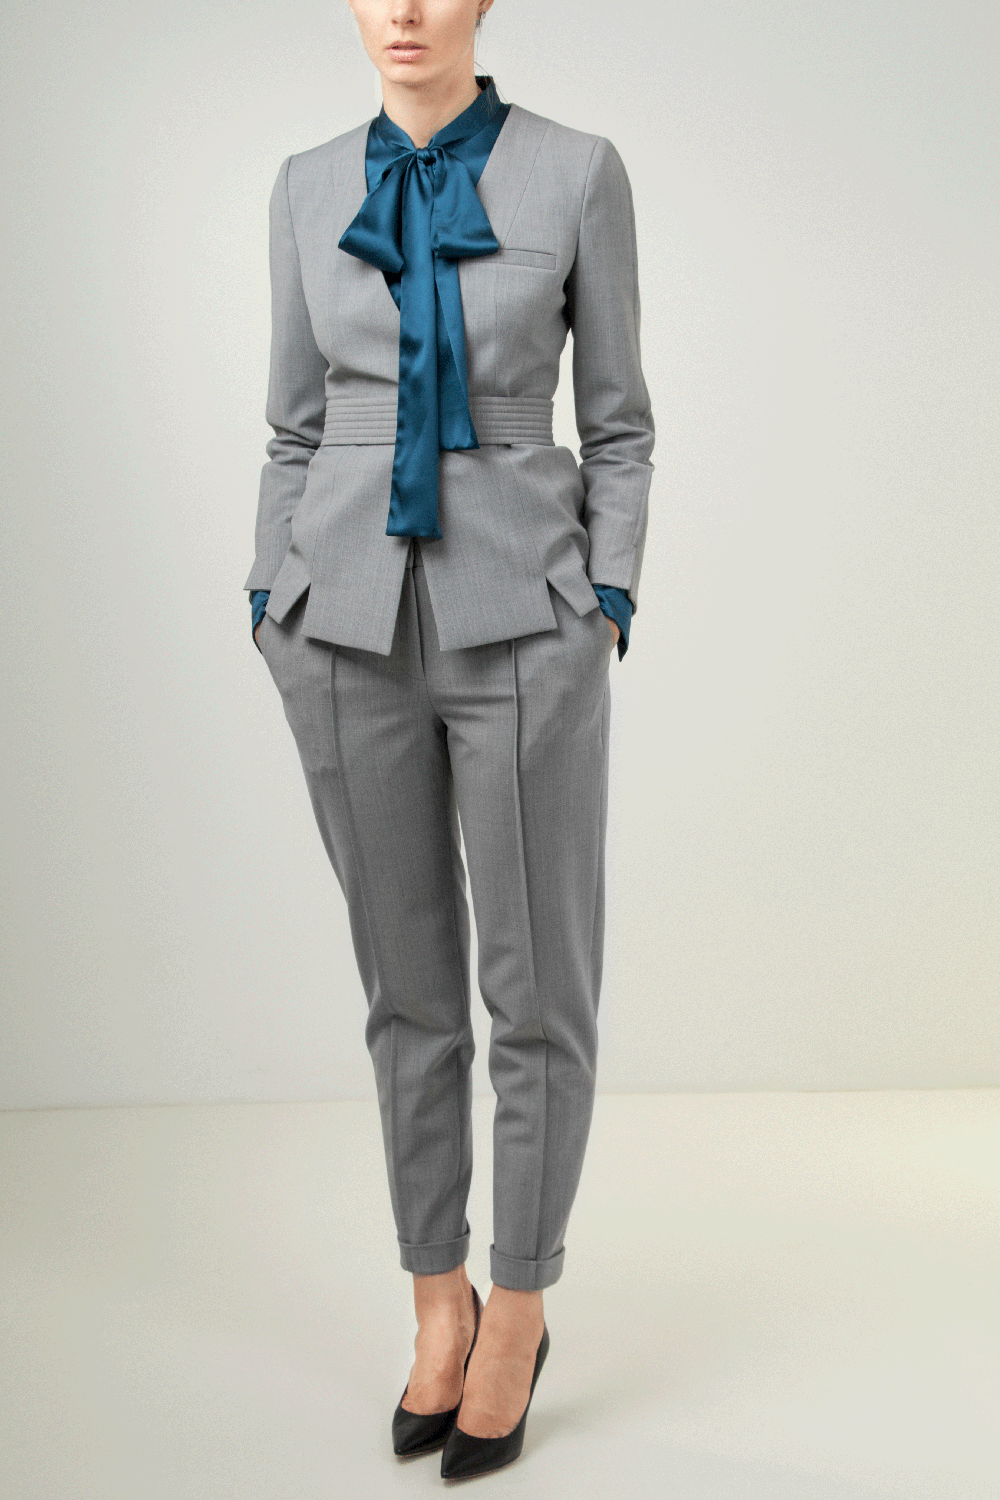 Outfit ideas for lawyers_grey pant suit